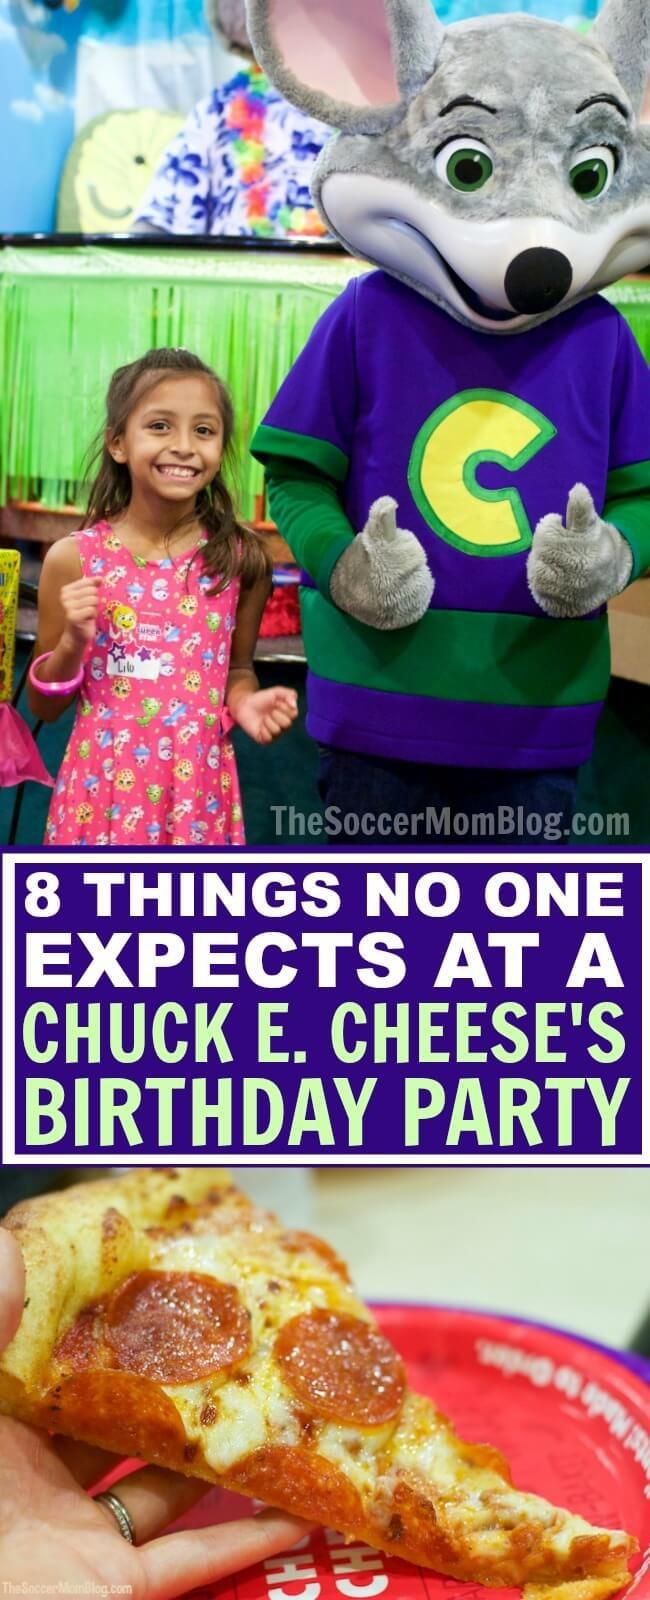 If You Already Have A Pre Conceived Notion About What A Chuck E Cheese S Party Is Like St Chucky Cheese Birthday Party Cheese Party Chuck E Cheese Birthday